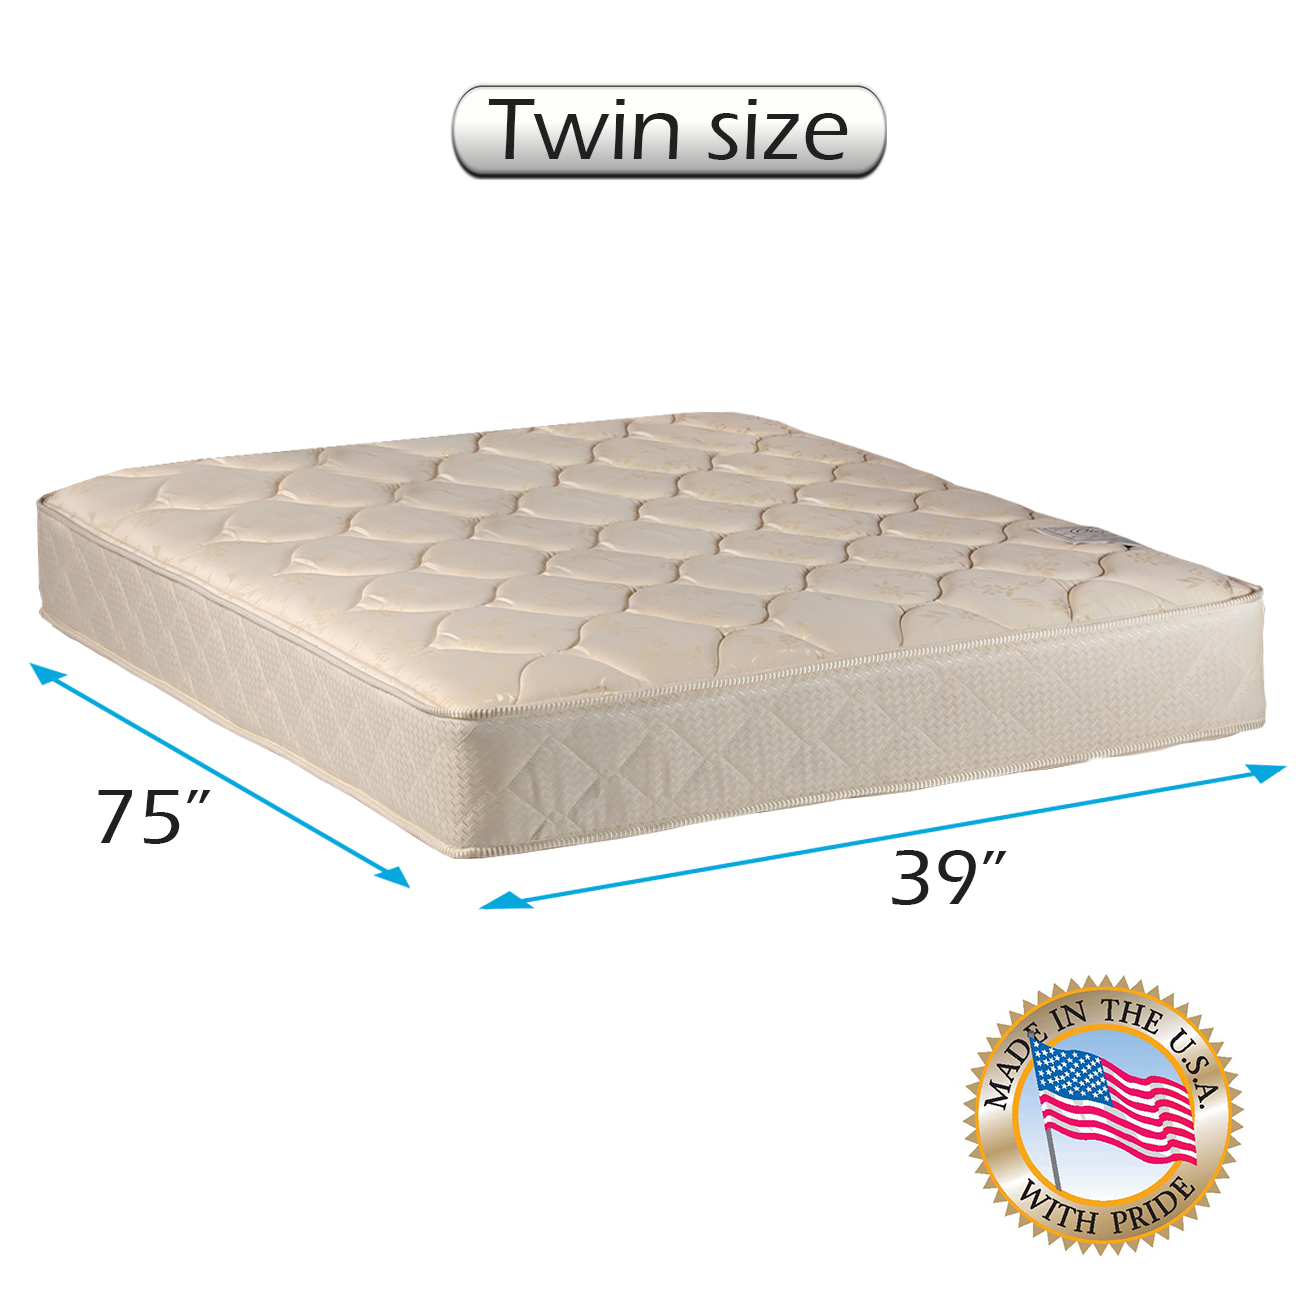 "Dream Solutions USA Gentle Firm Twin 39""x75""x7"" Mattress Only - Fully Assembled, Orthopedic, Good for your back, Long lasting and Superior Quality"